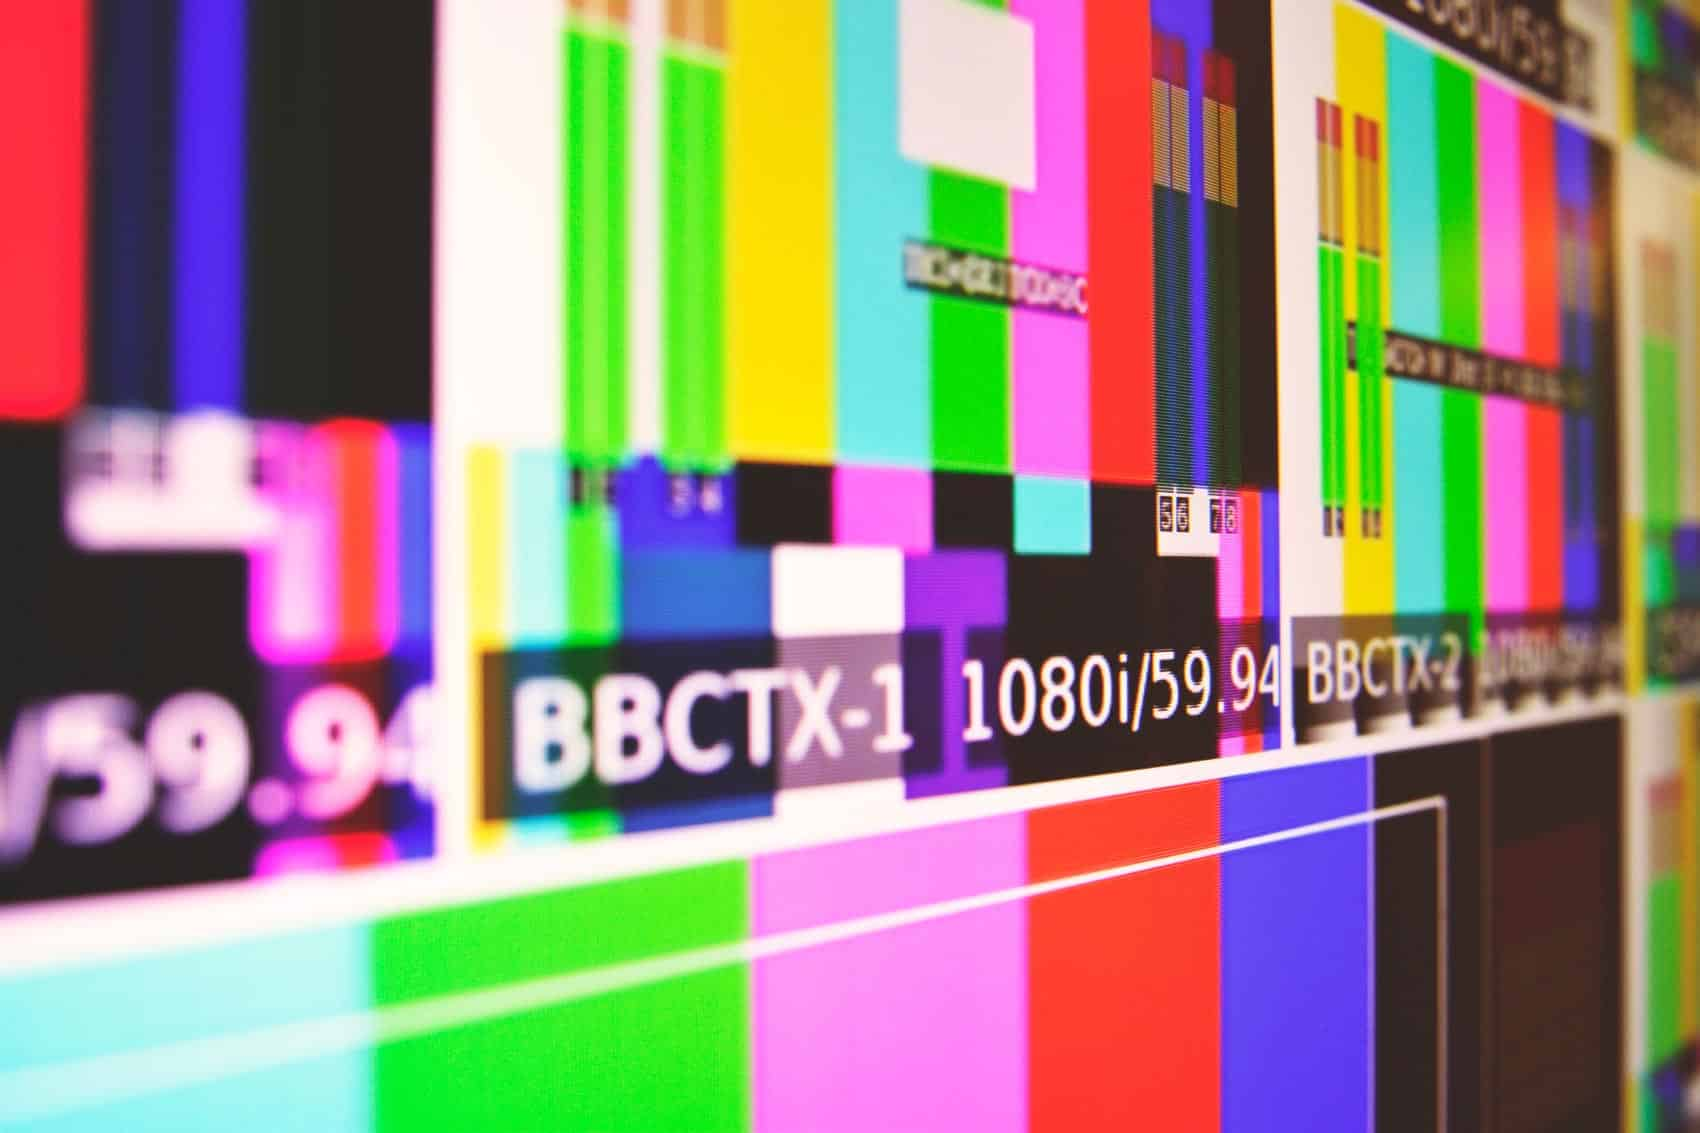 RGB color mix on a TV screen